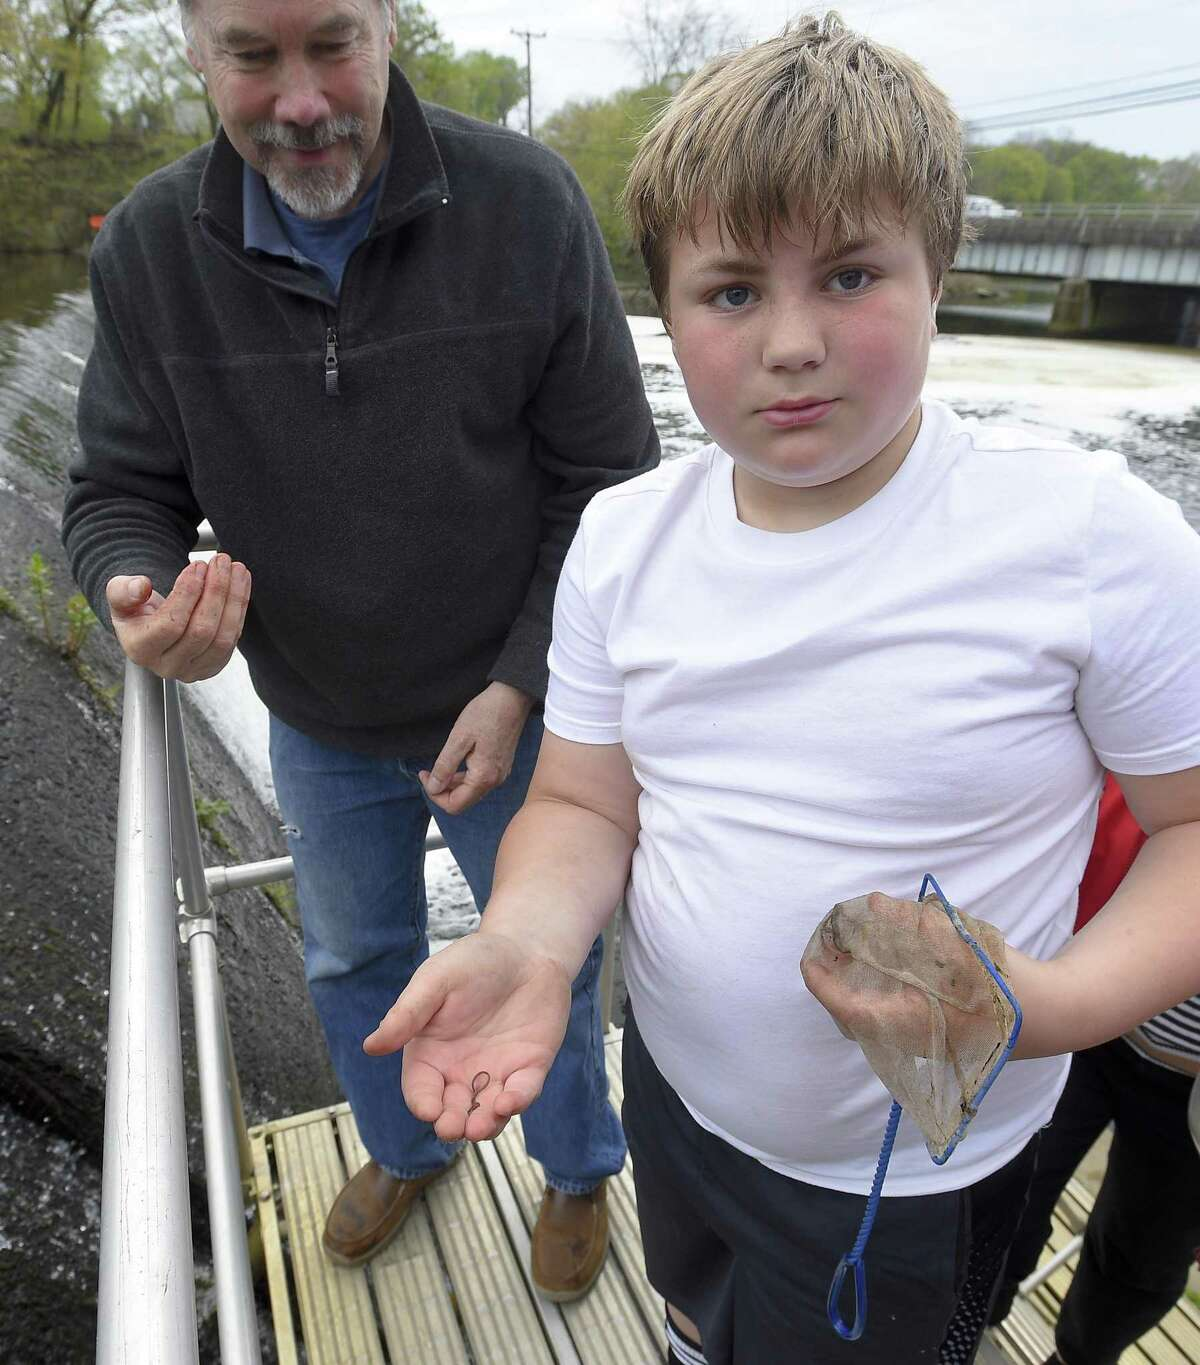 Volunteer Bob Stanton and Henry Wahl, 10, of Riverside show a Baby American Glass Eel they captured at the Mianus Pond Fish Ladder on May 4, 2019 in Greenwich, Connecticut. The fishway staircase is one of 44 fishways spread throughout Connecticut and is used to count the yearly migration of Alewifo, Blueback Herring and other species. An average of 5,600 different fish species pass through the Mianus Fishway.